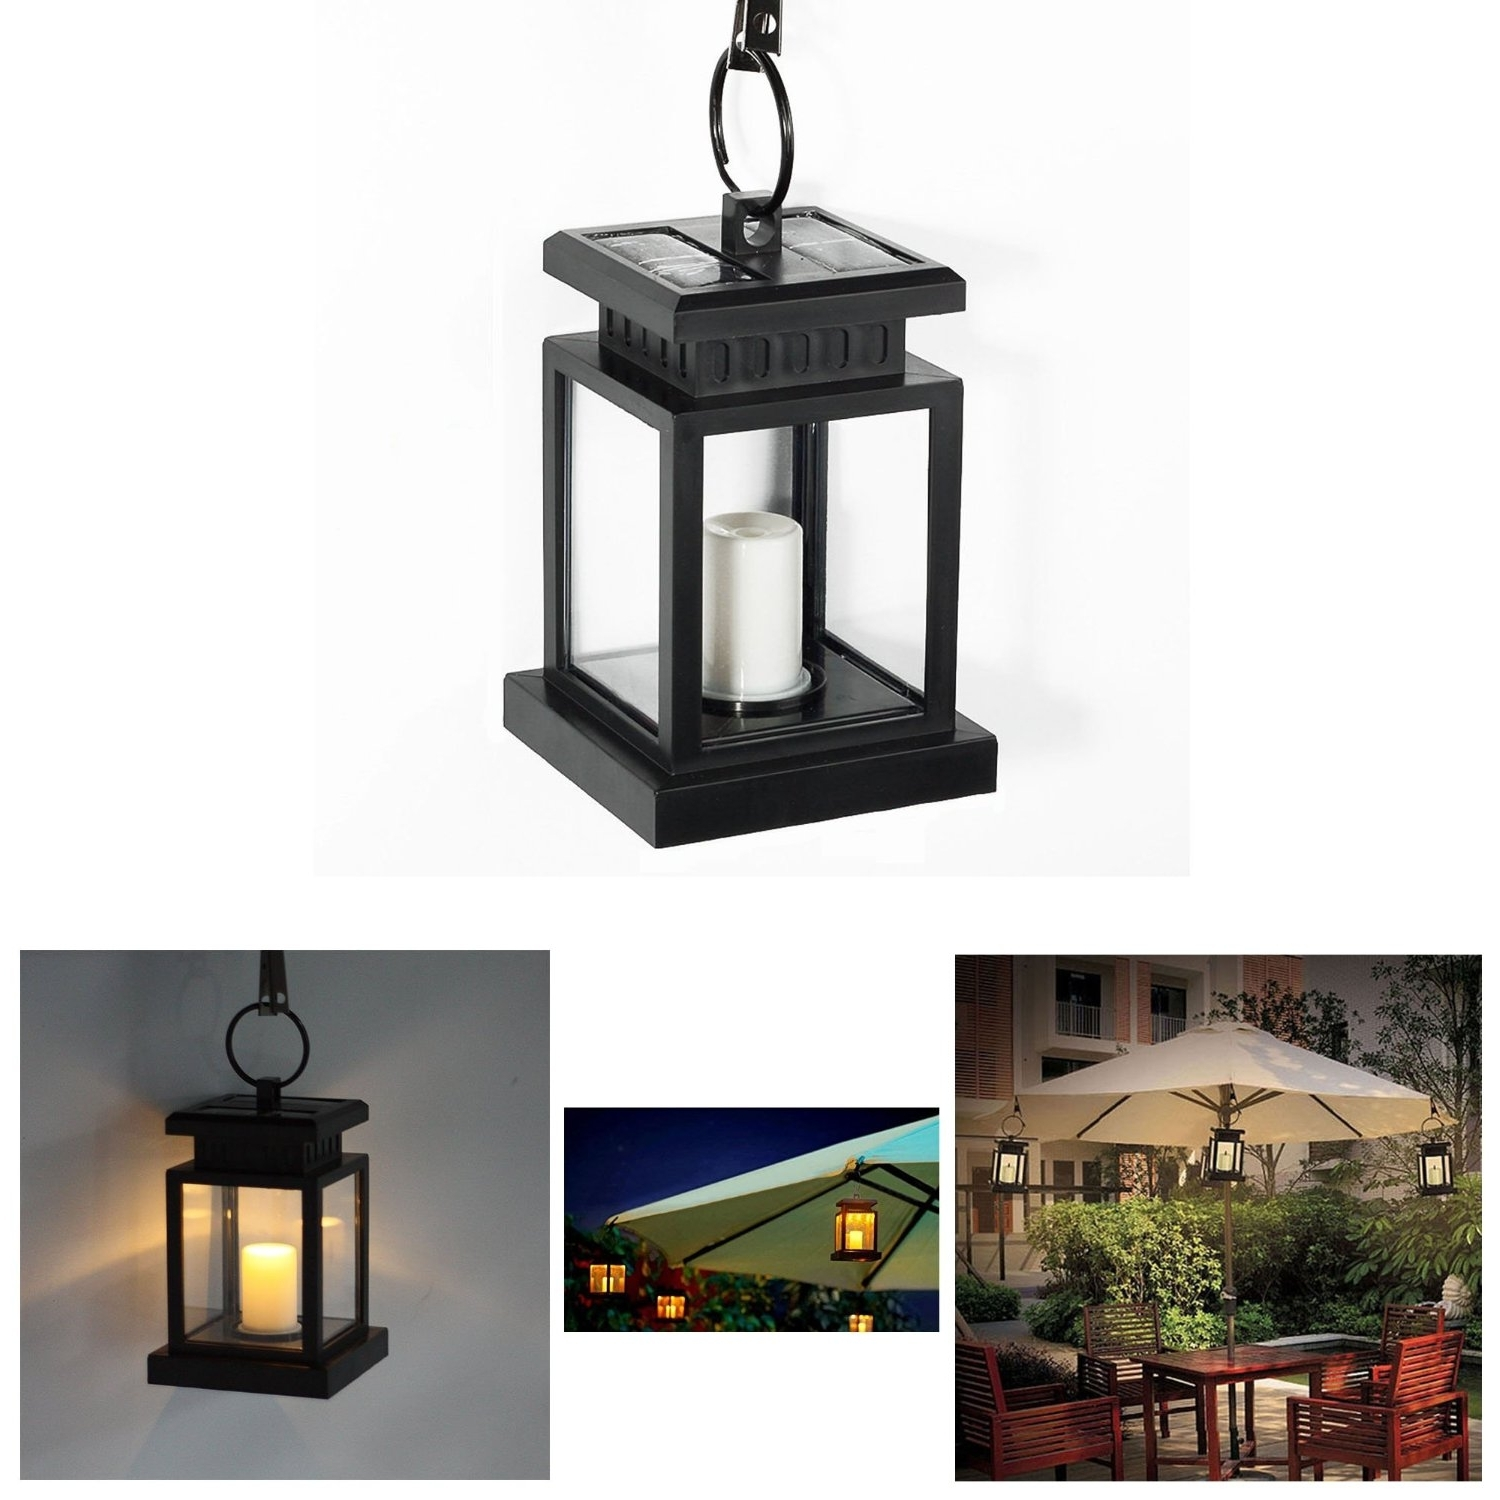 Widely Used Outdoor Hanging Lanterns For Candles Intended For Solar Powered Hanging Umbrella Lantern Candle Led Light With Clamp (View 7 of 20)